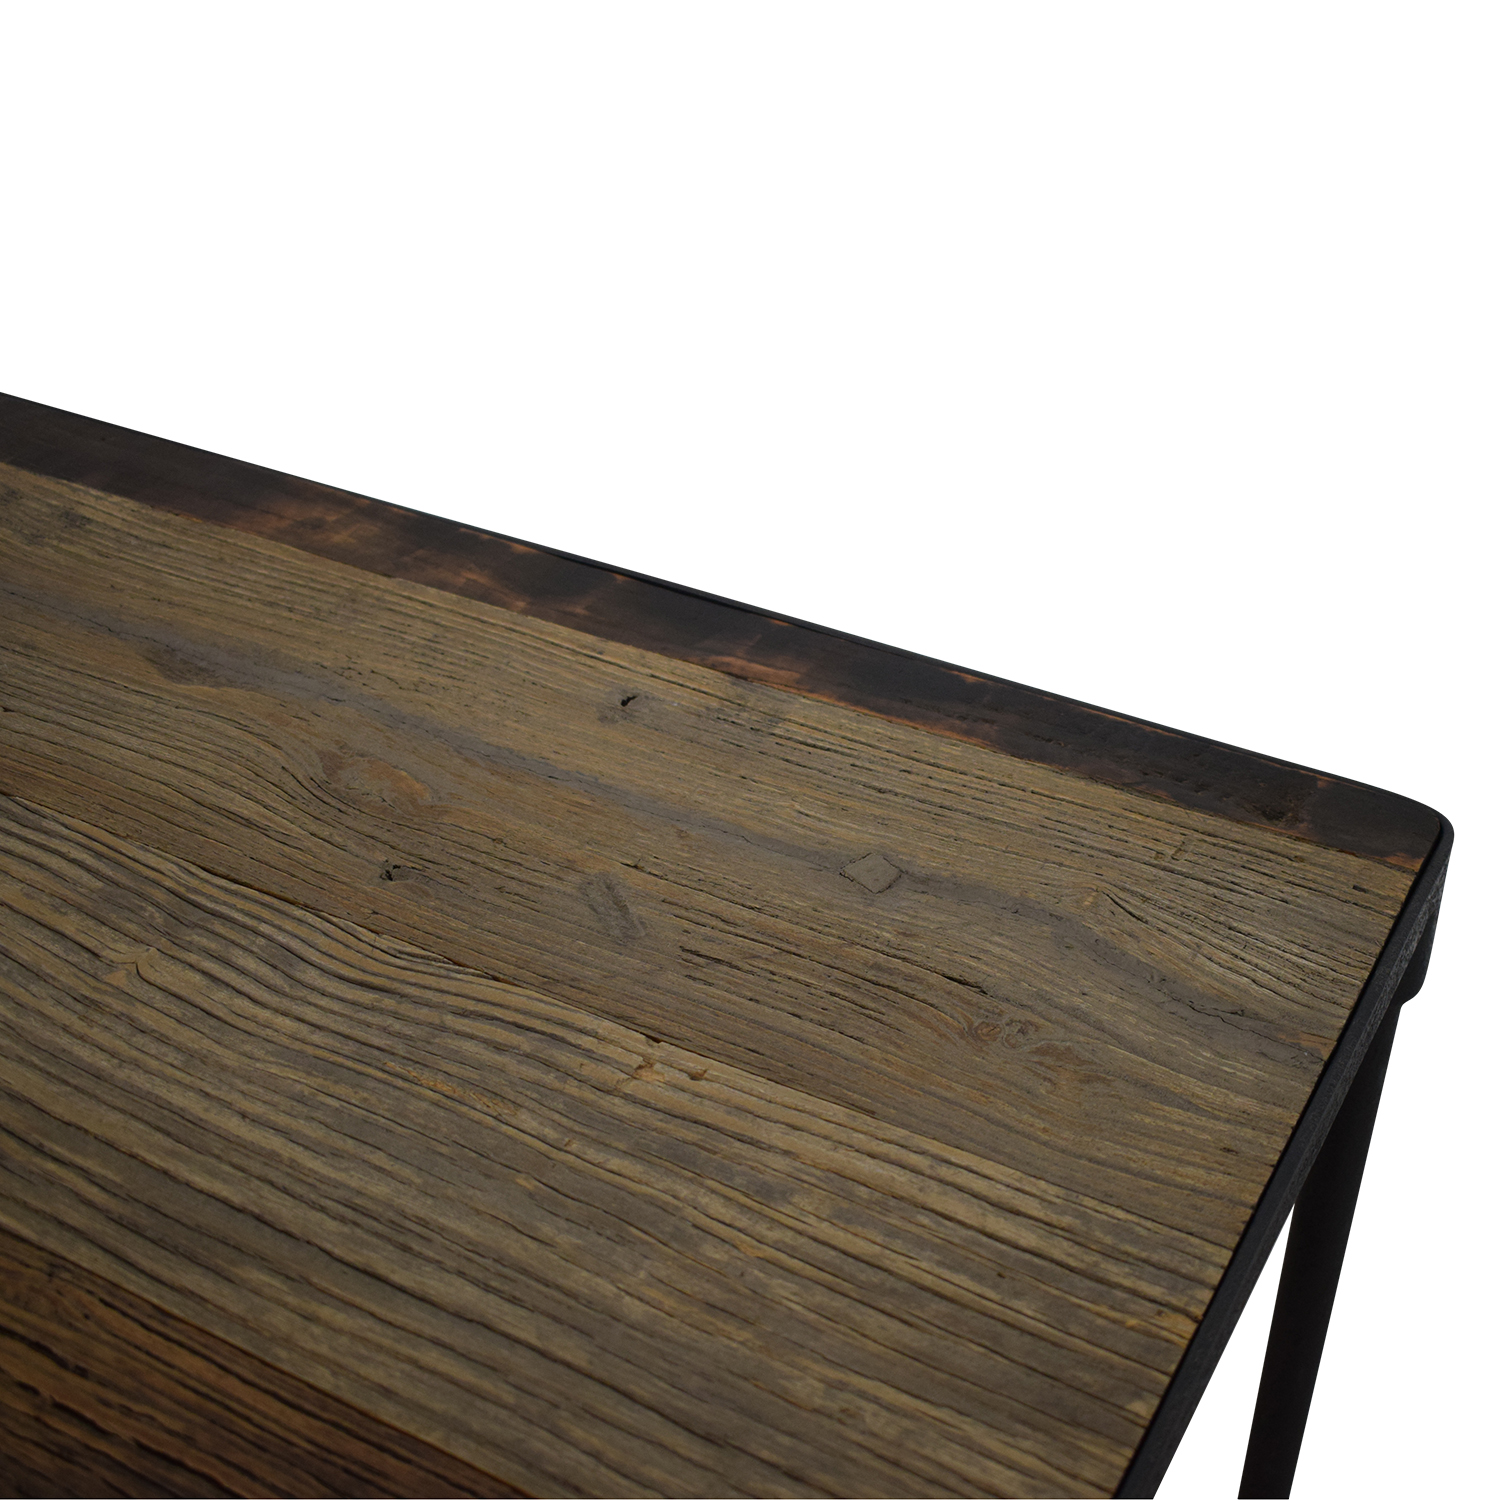 Restoration Hardware Restoration Hardware Dutch Industrial Console Table nj